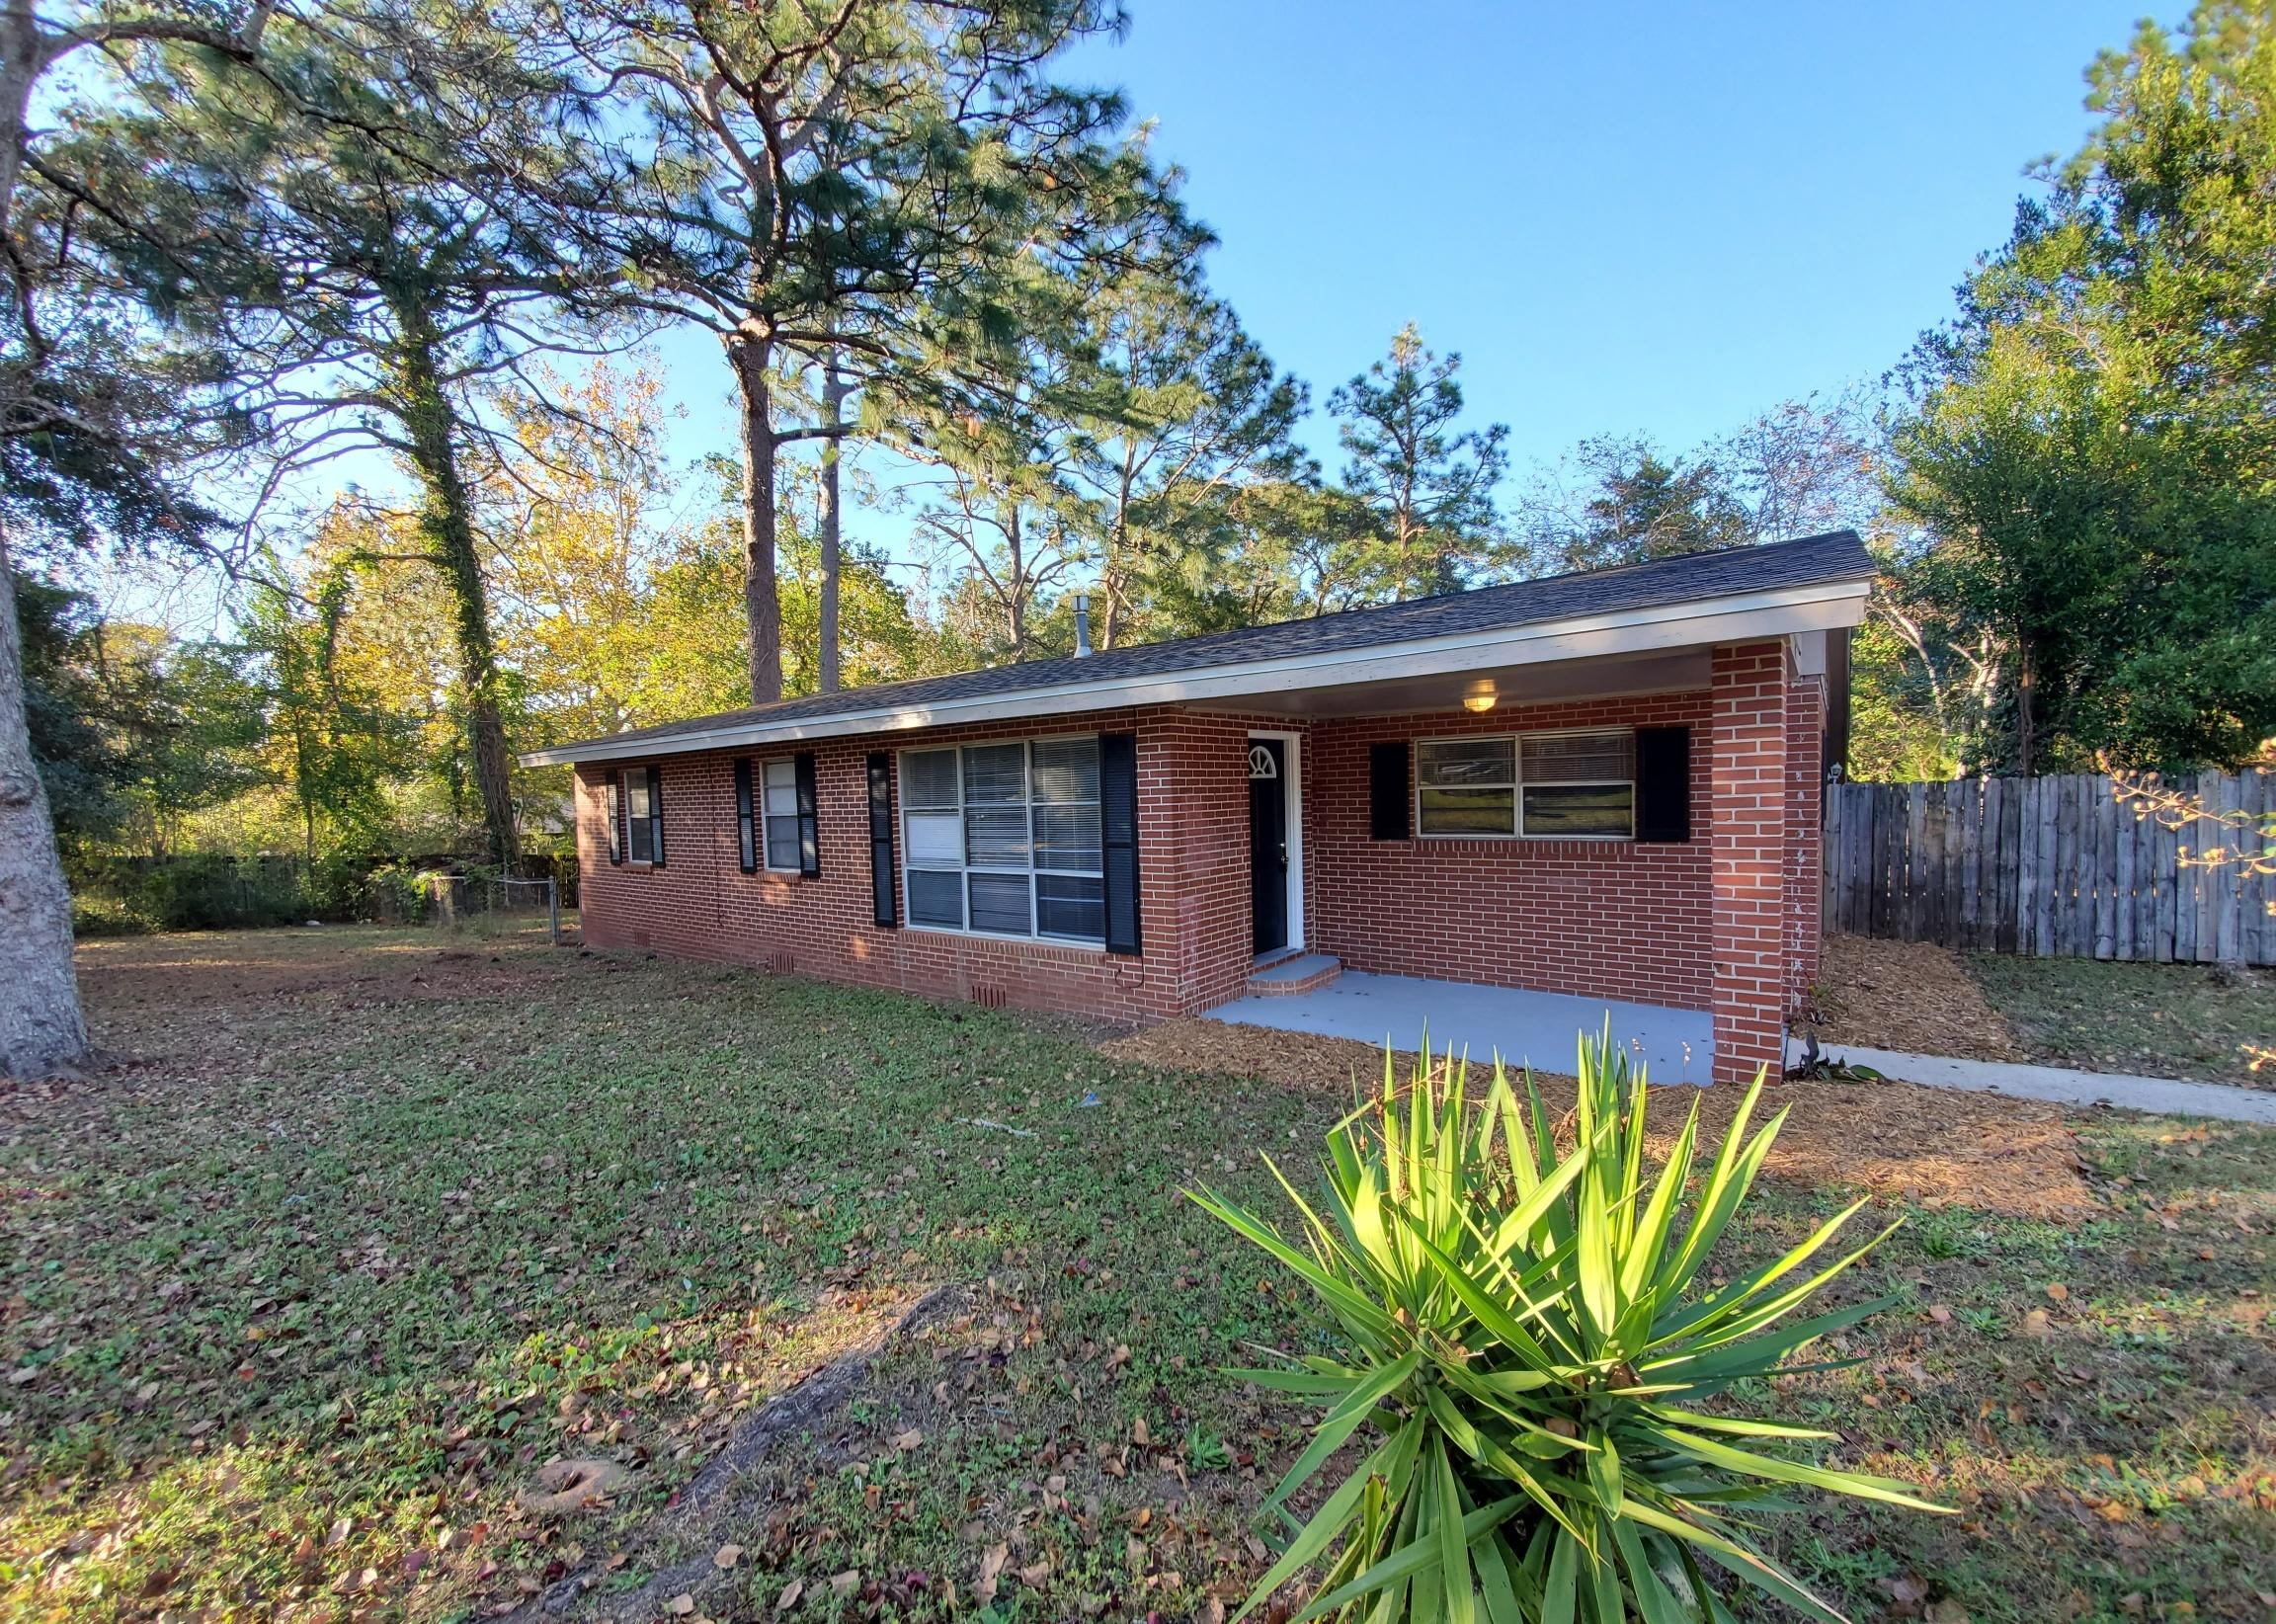 Photo of home for sale at 1095 Texas, Crestview FL